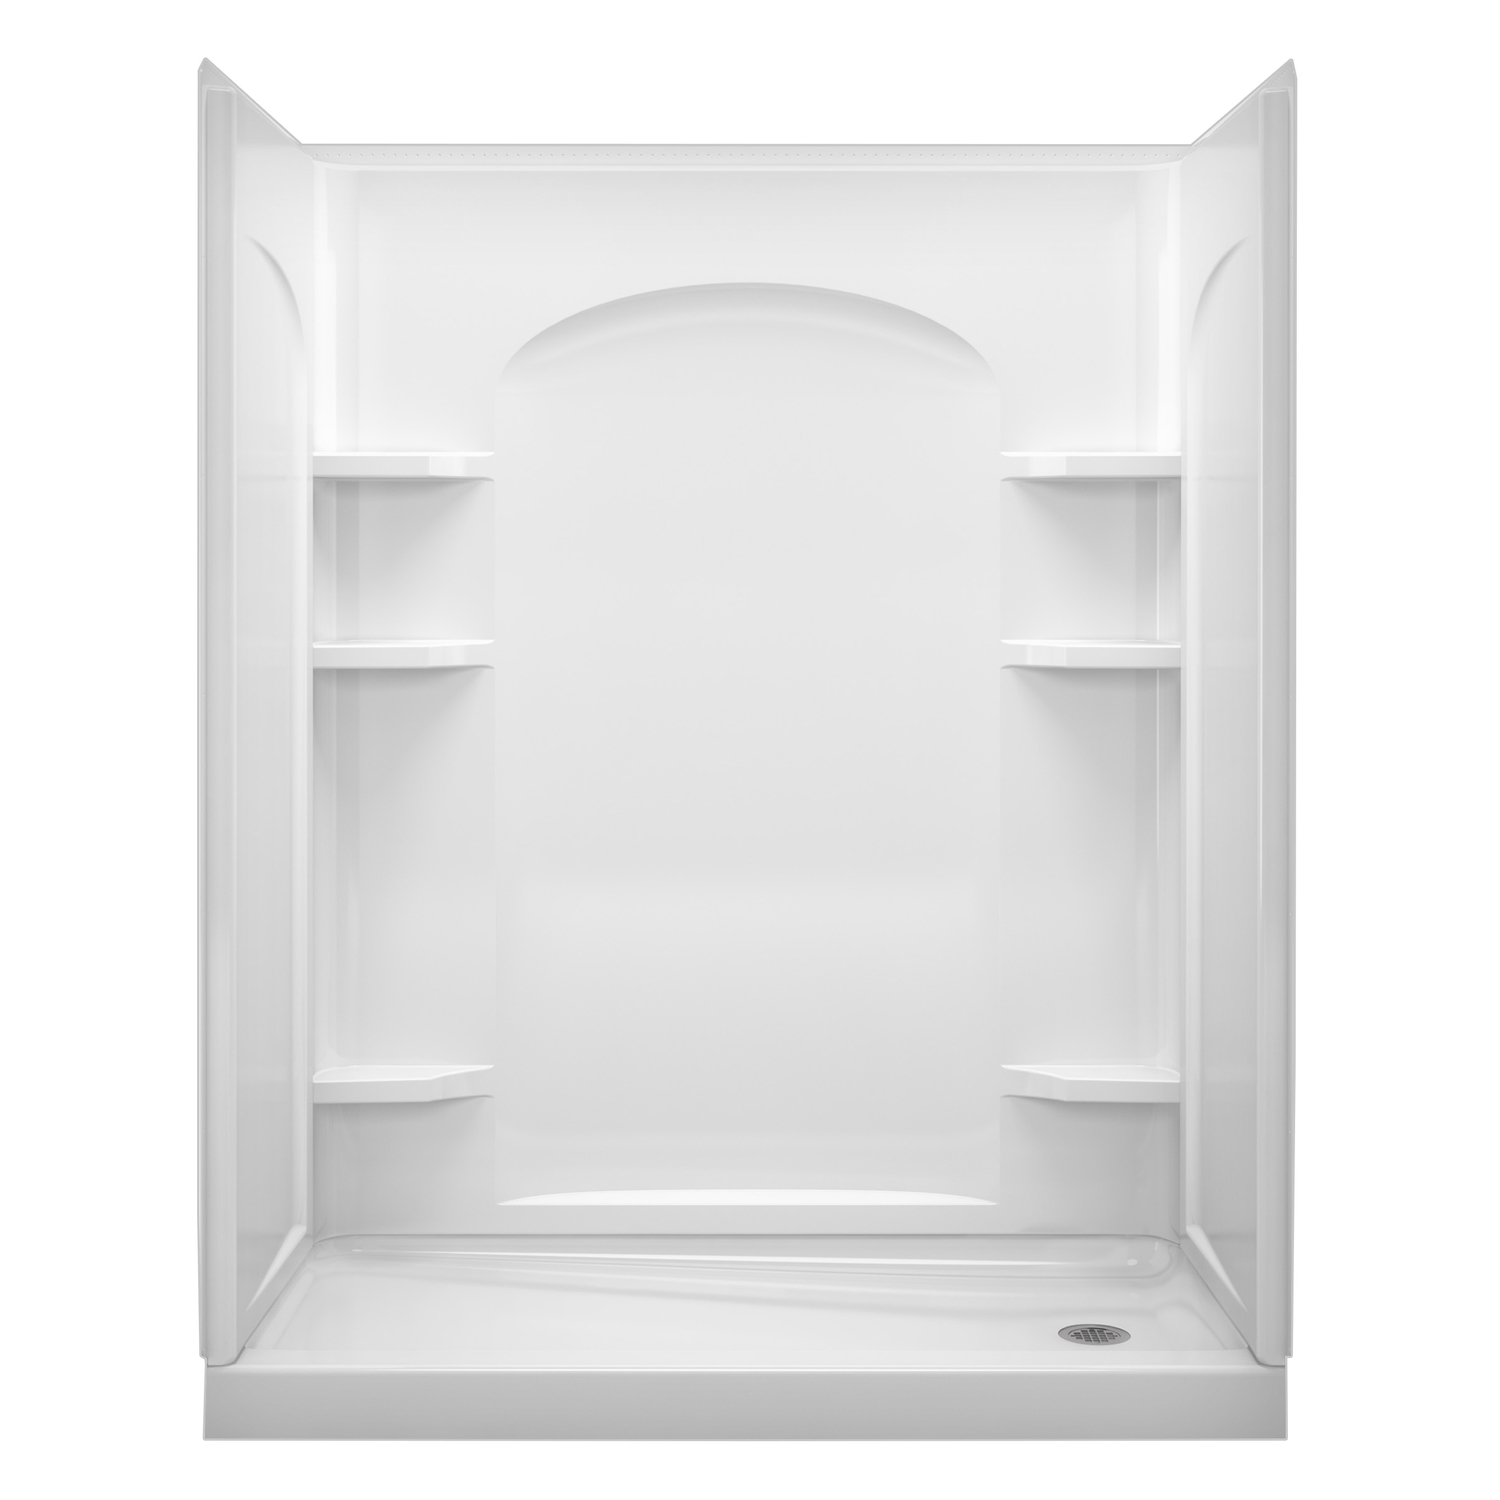 Sterling  Ensemble  75-1/4 in. H x 30 in. W x 60 in. L White  Three Piece  Rectangular  Shower Wall